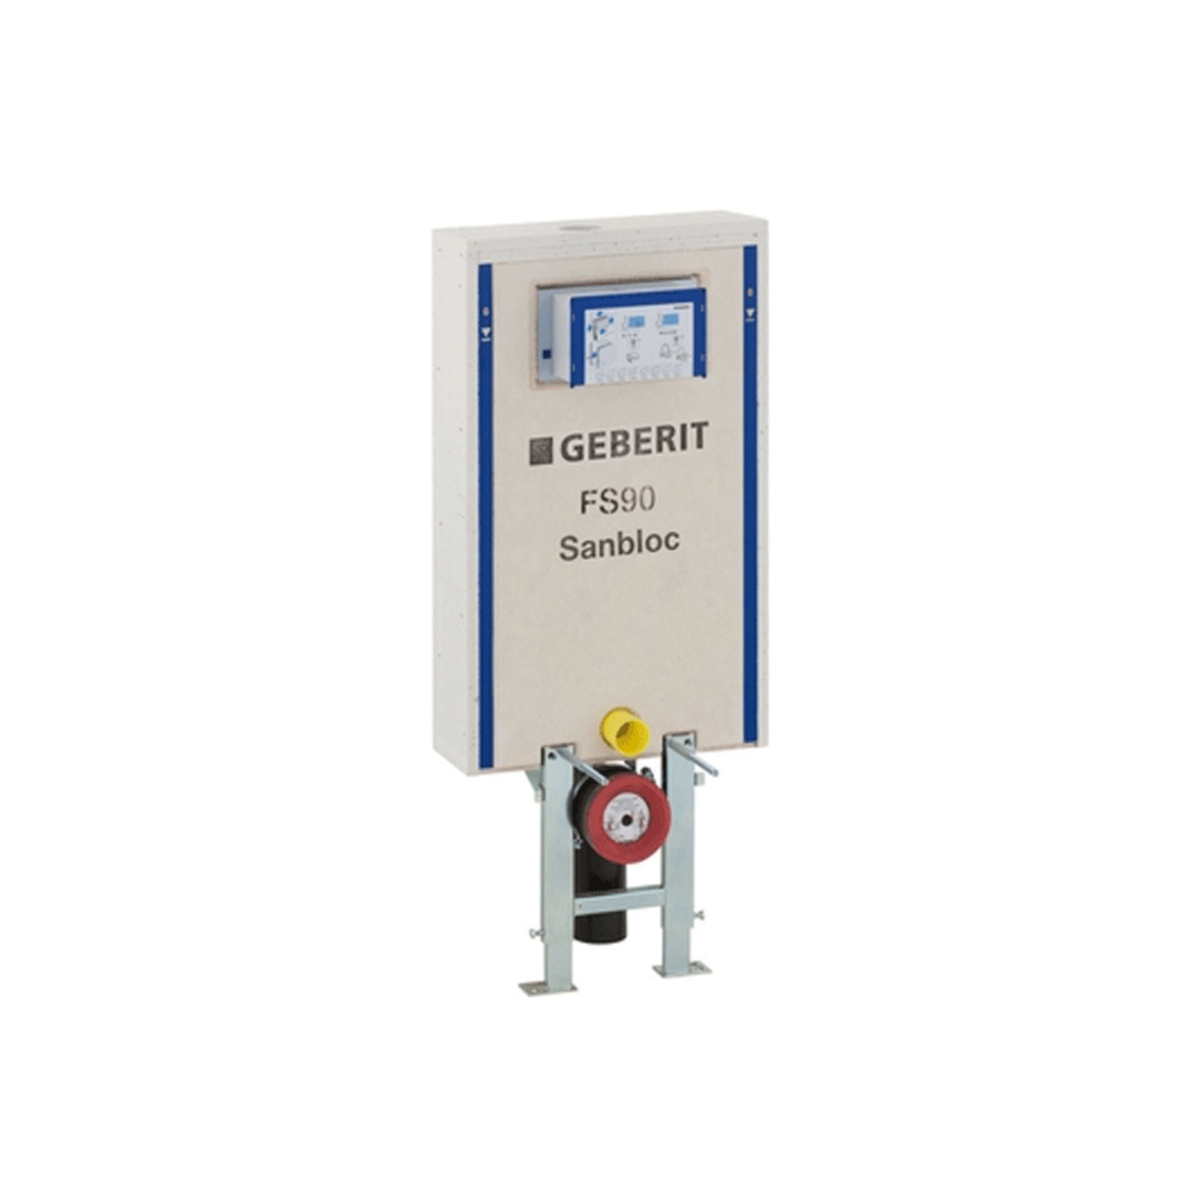 Geberit sanbloc wc element fs90 inclusief reservoir up320 for Geberit products